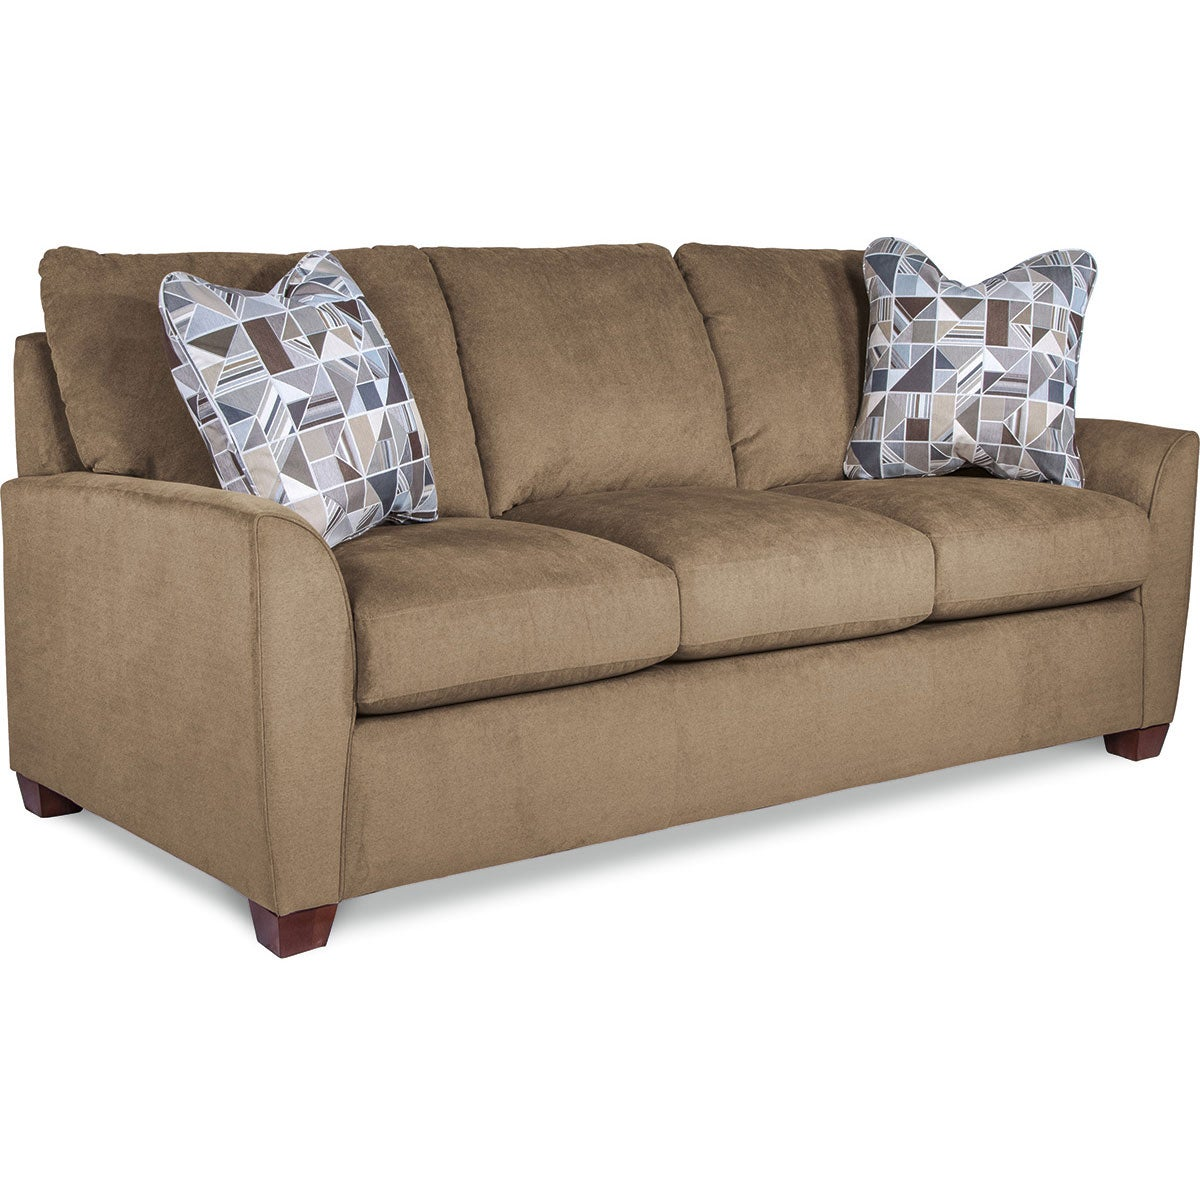 Amy premier sofa for Couch sofa set